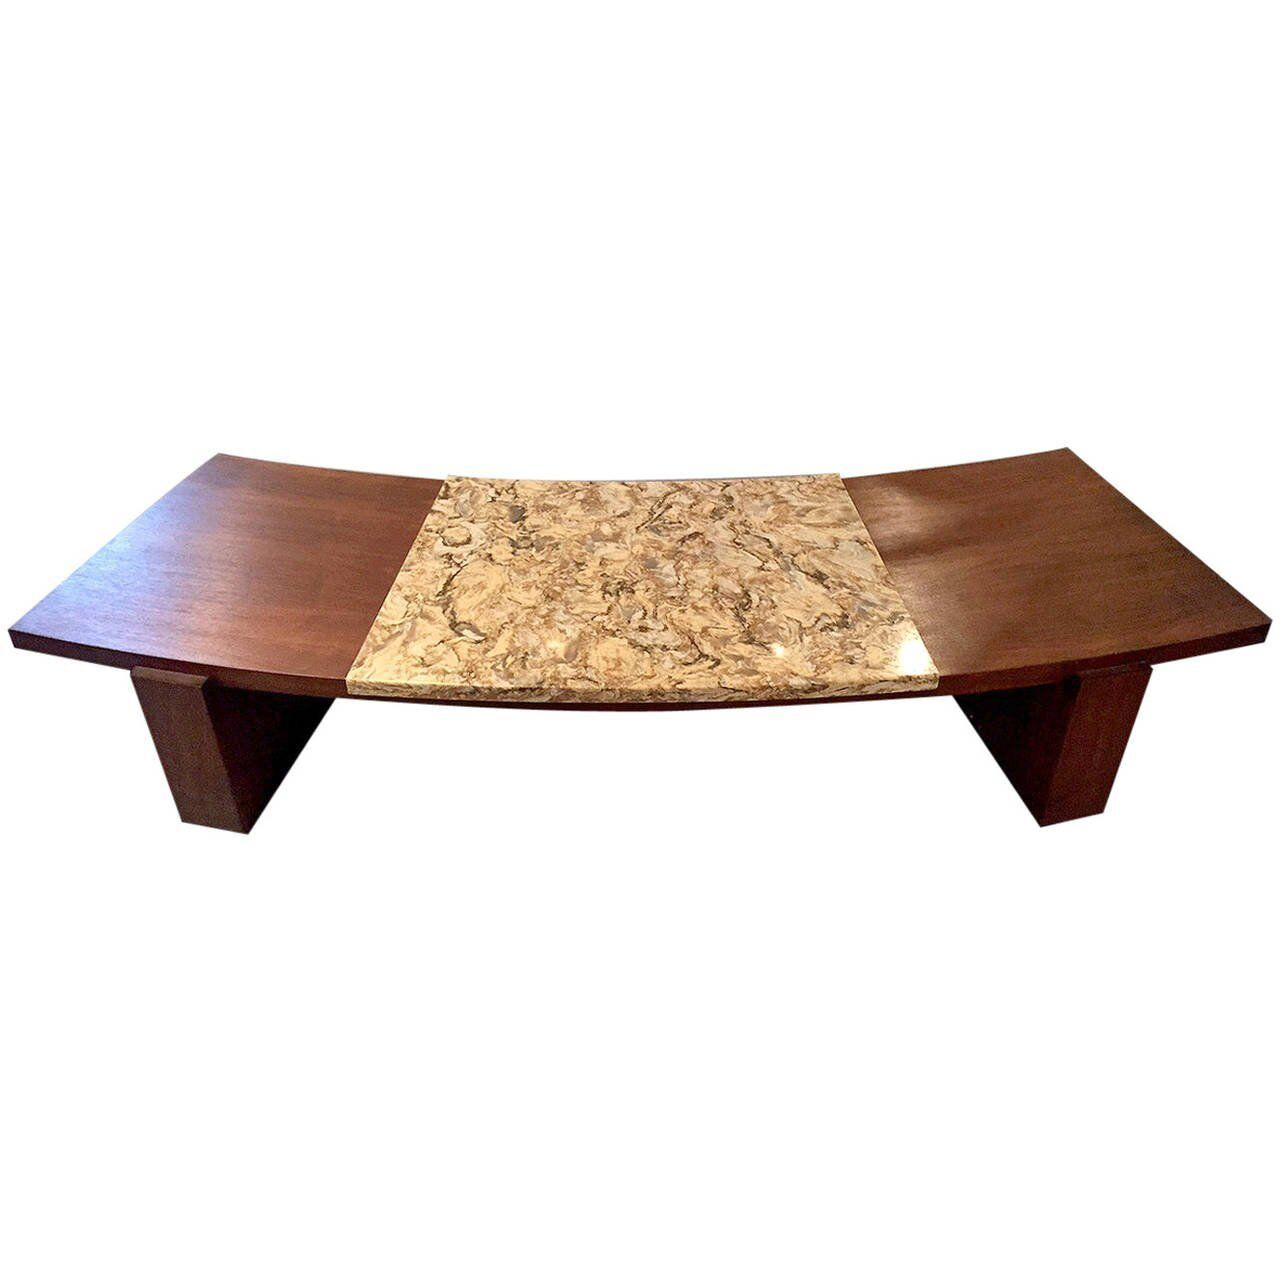 Kagan Coffee Table.Details About Early Walnut And Marble Curvy Coffee Table By Vladimir Kagan